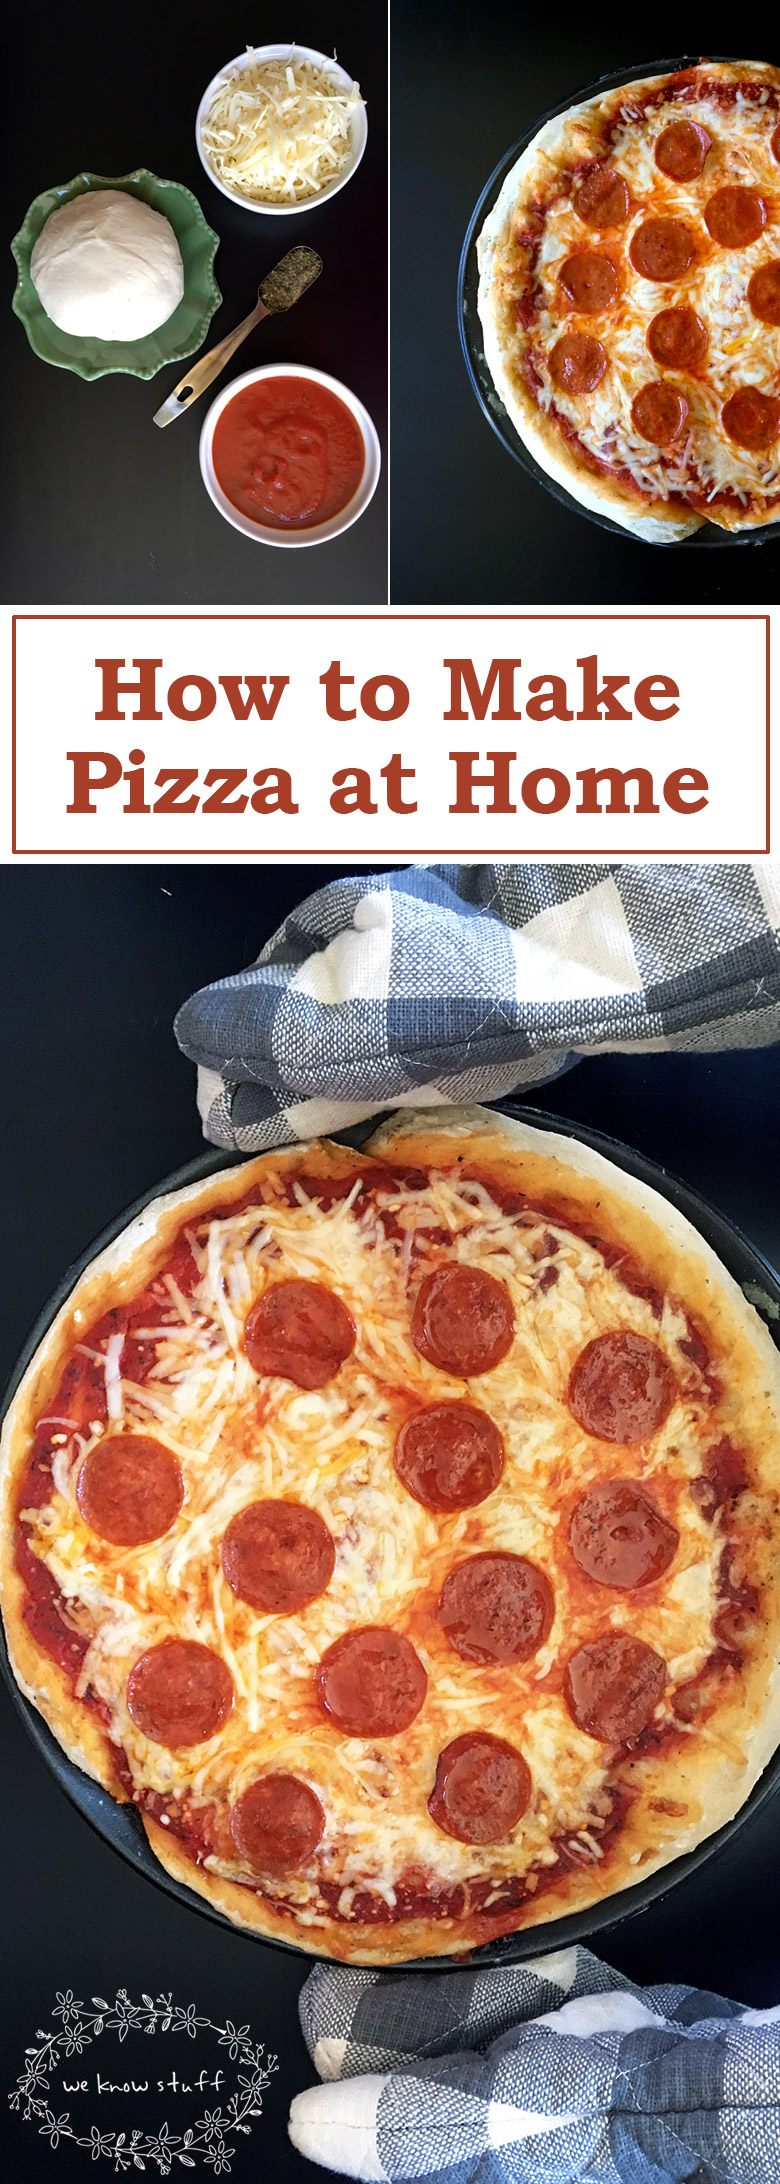 Learn How To Make Pizza At Home. Ready in just under thirty minutes, this stress-free recipe just uses pizza dough from your favorite pizza place.